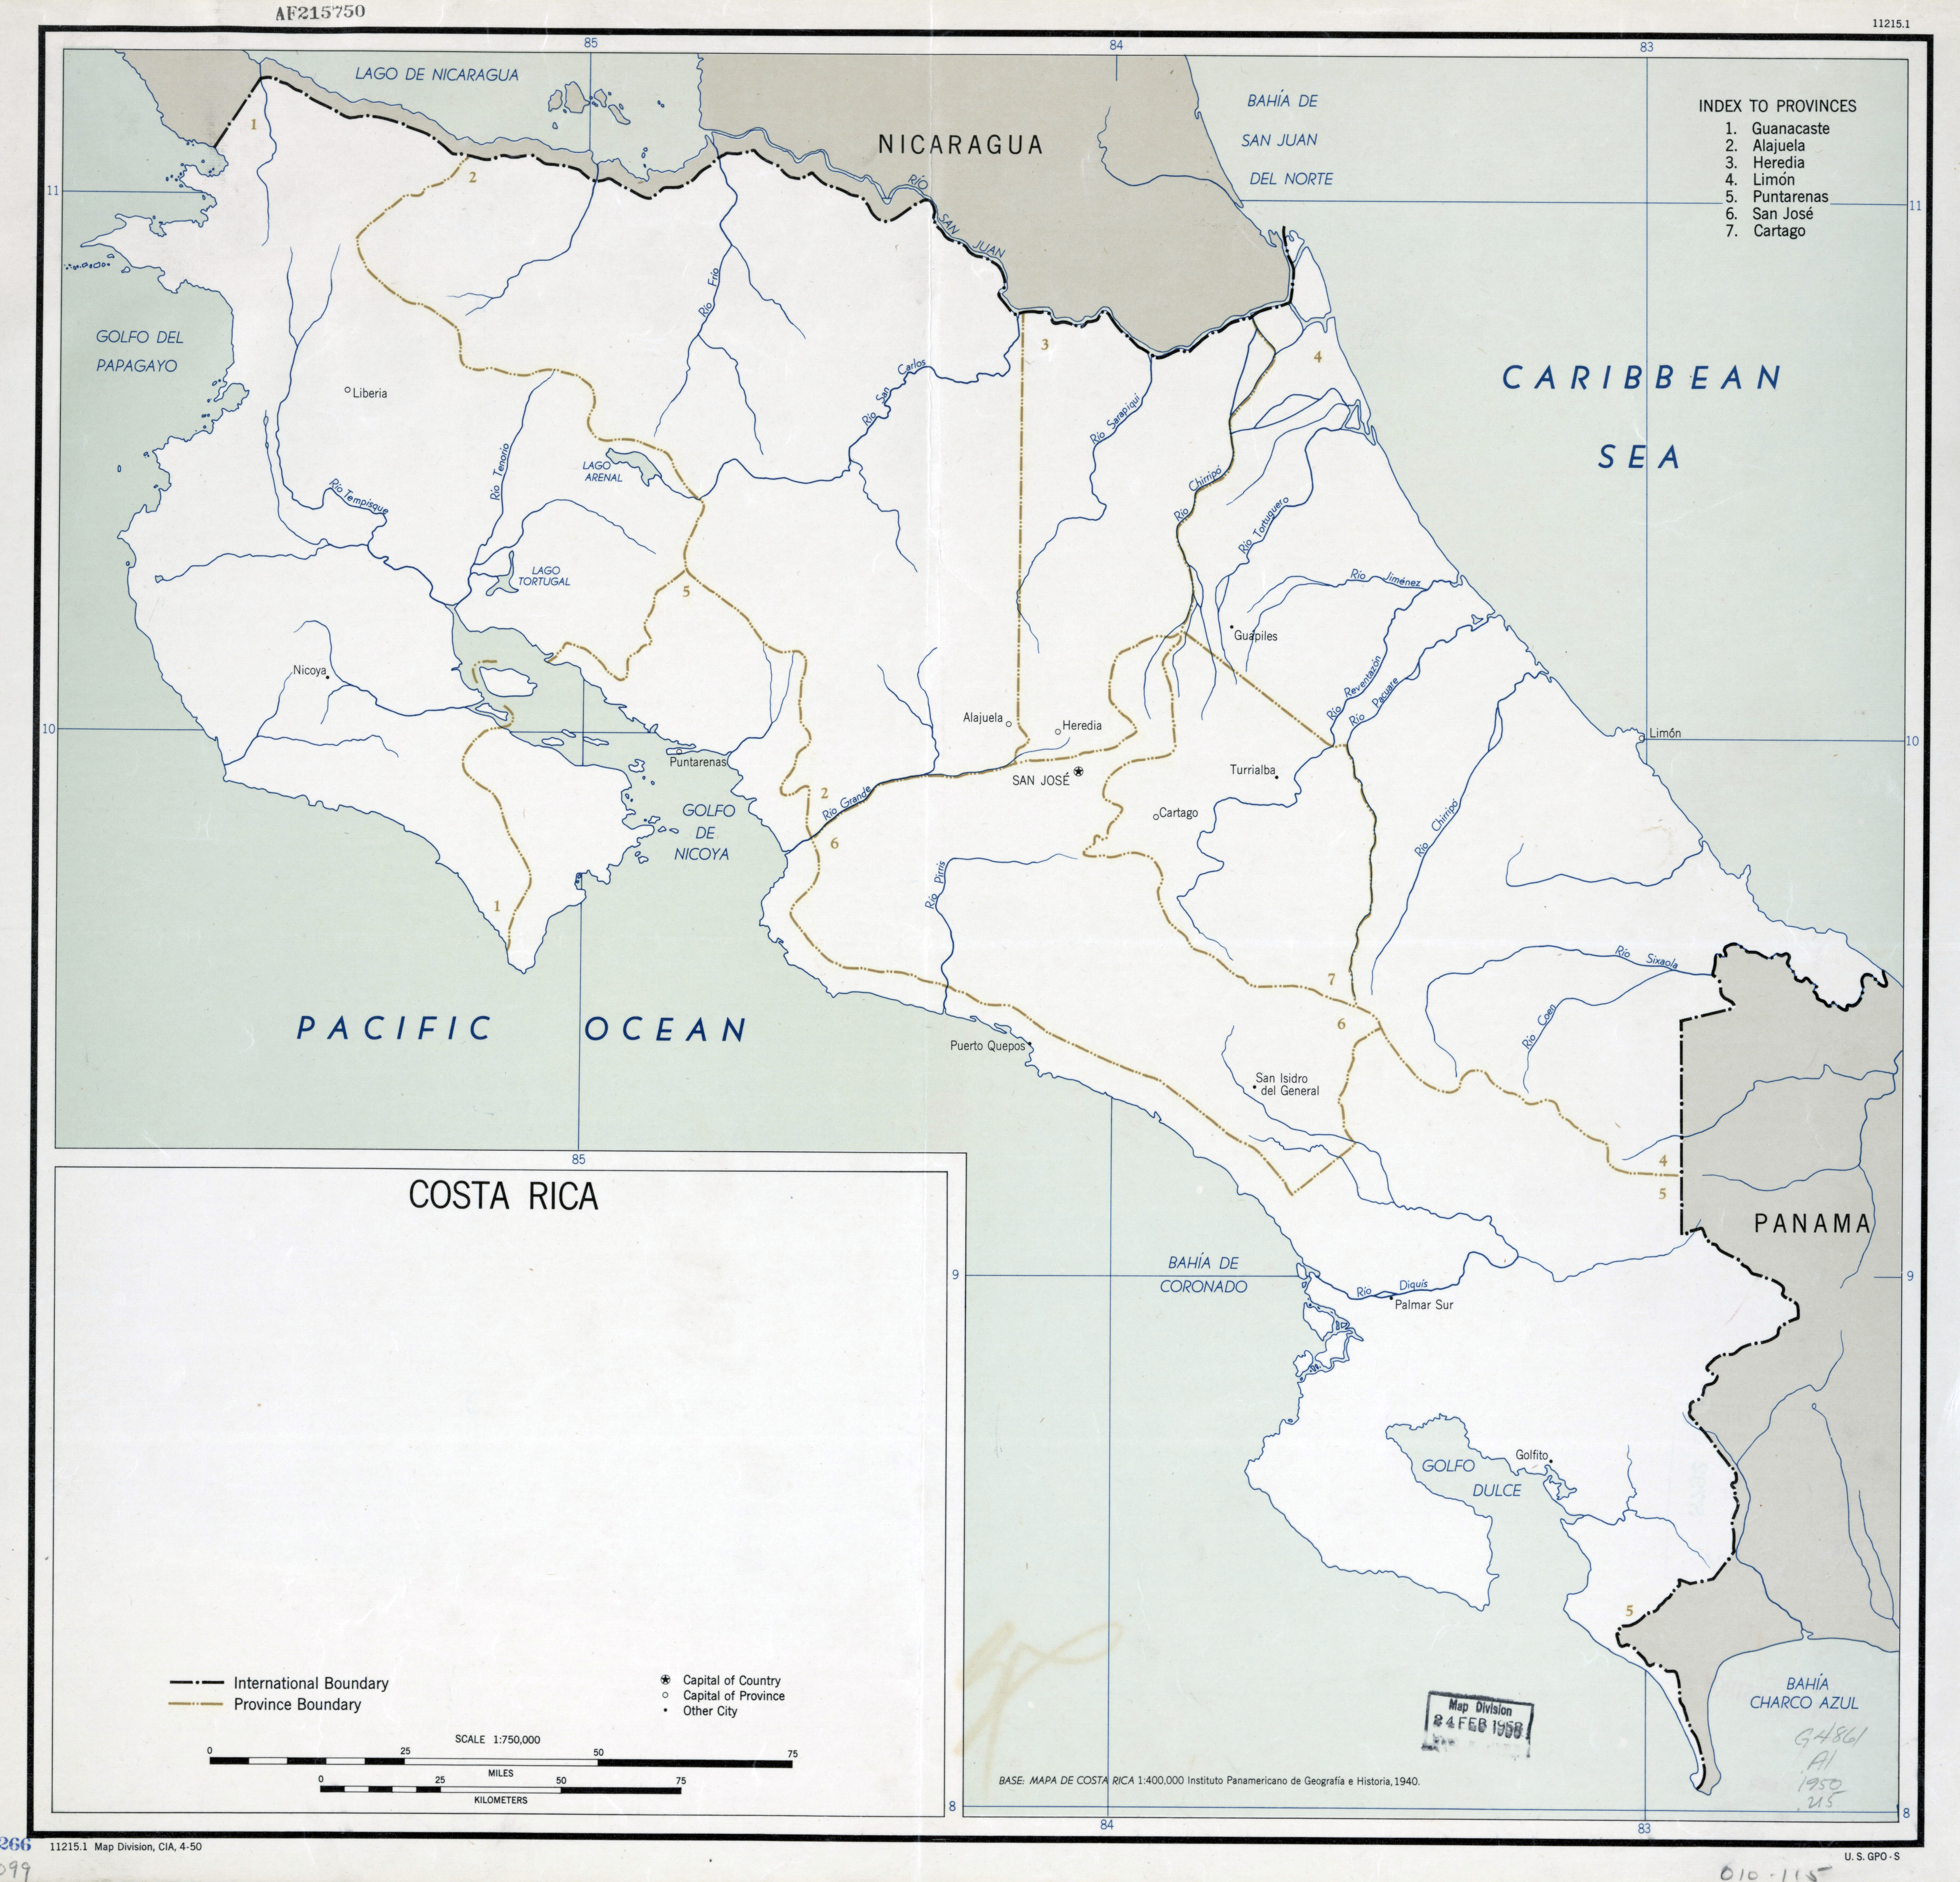 Large Scale Political And Administrative Map Of Costa Rica With Major Cities 1950